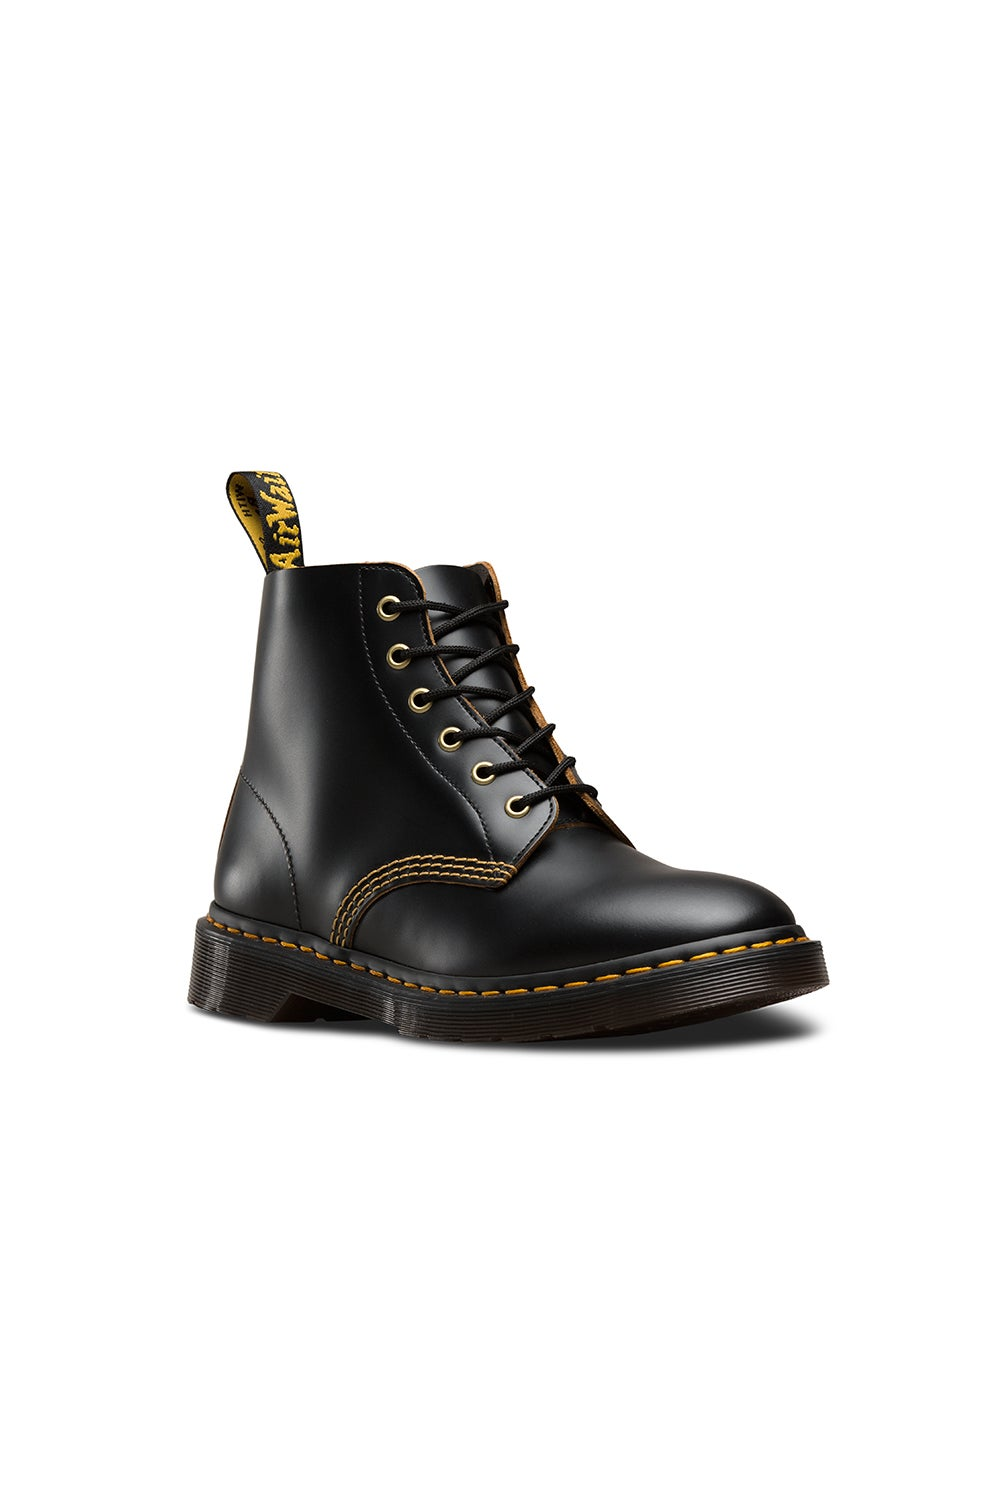 Dr. Martens 101 Arc Boot Black